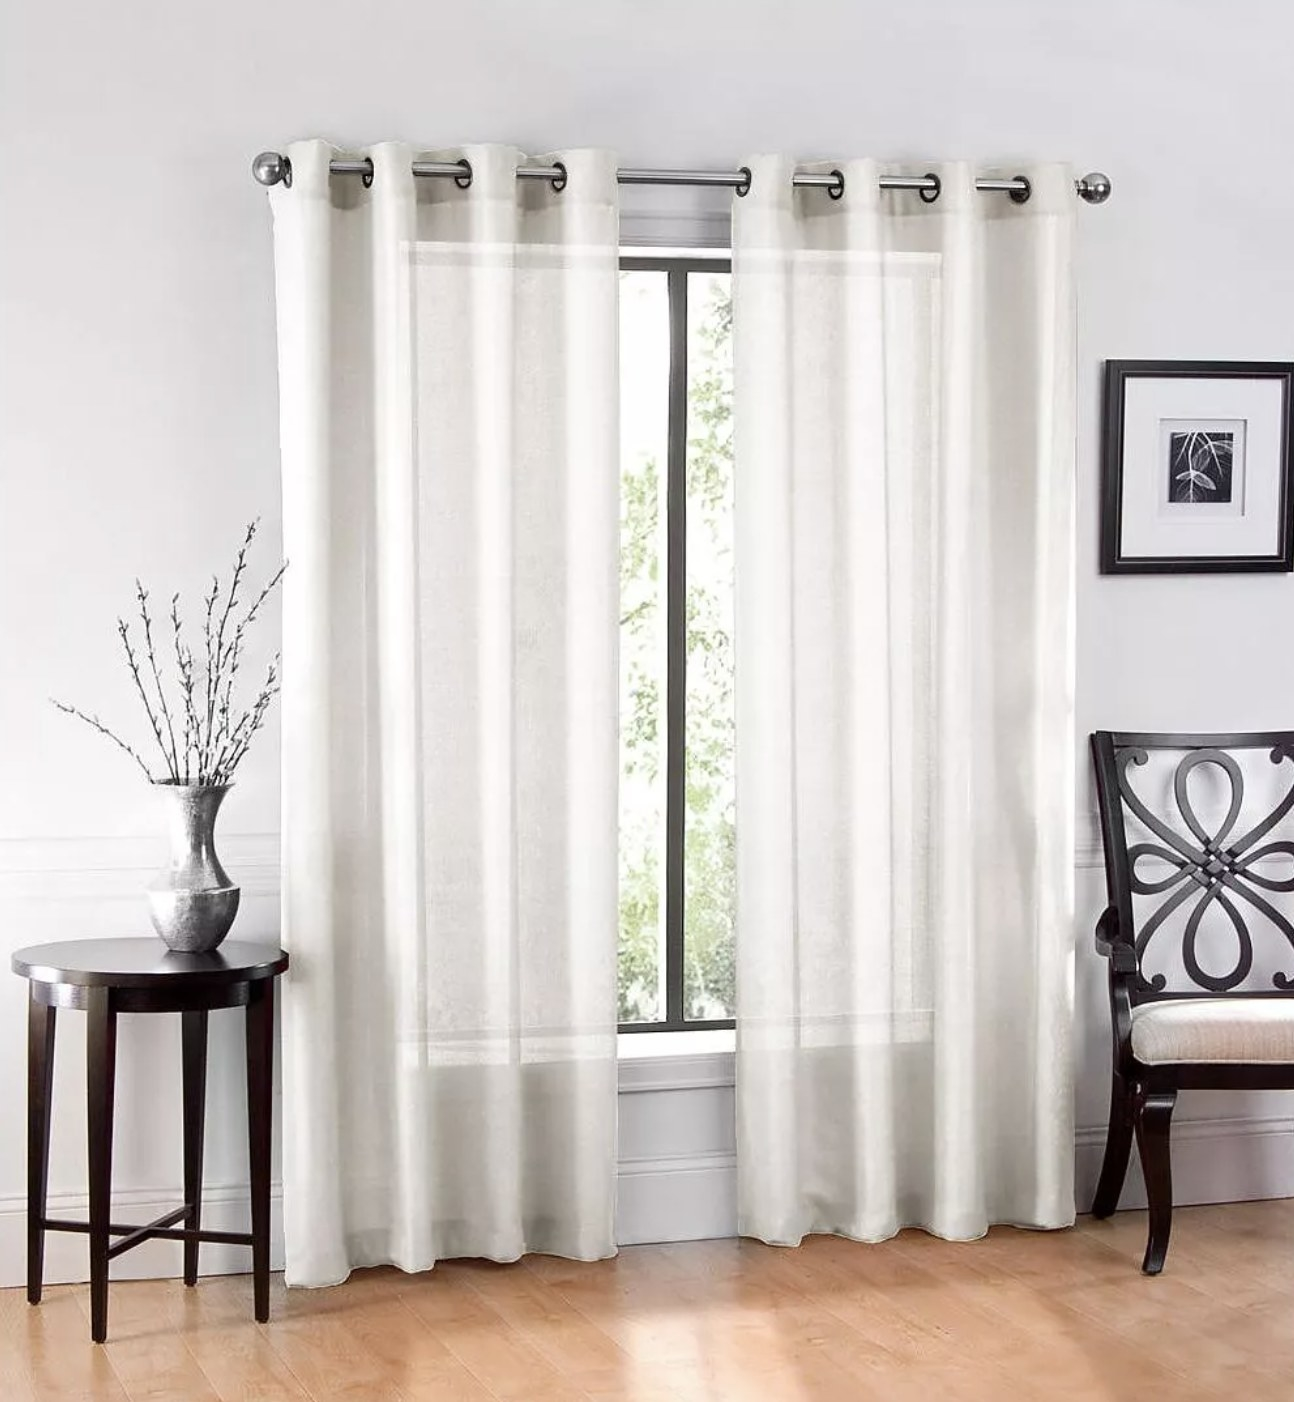 The white sheer curtain panels